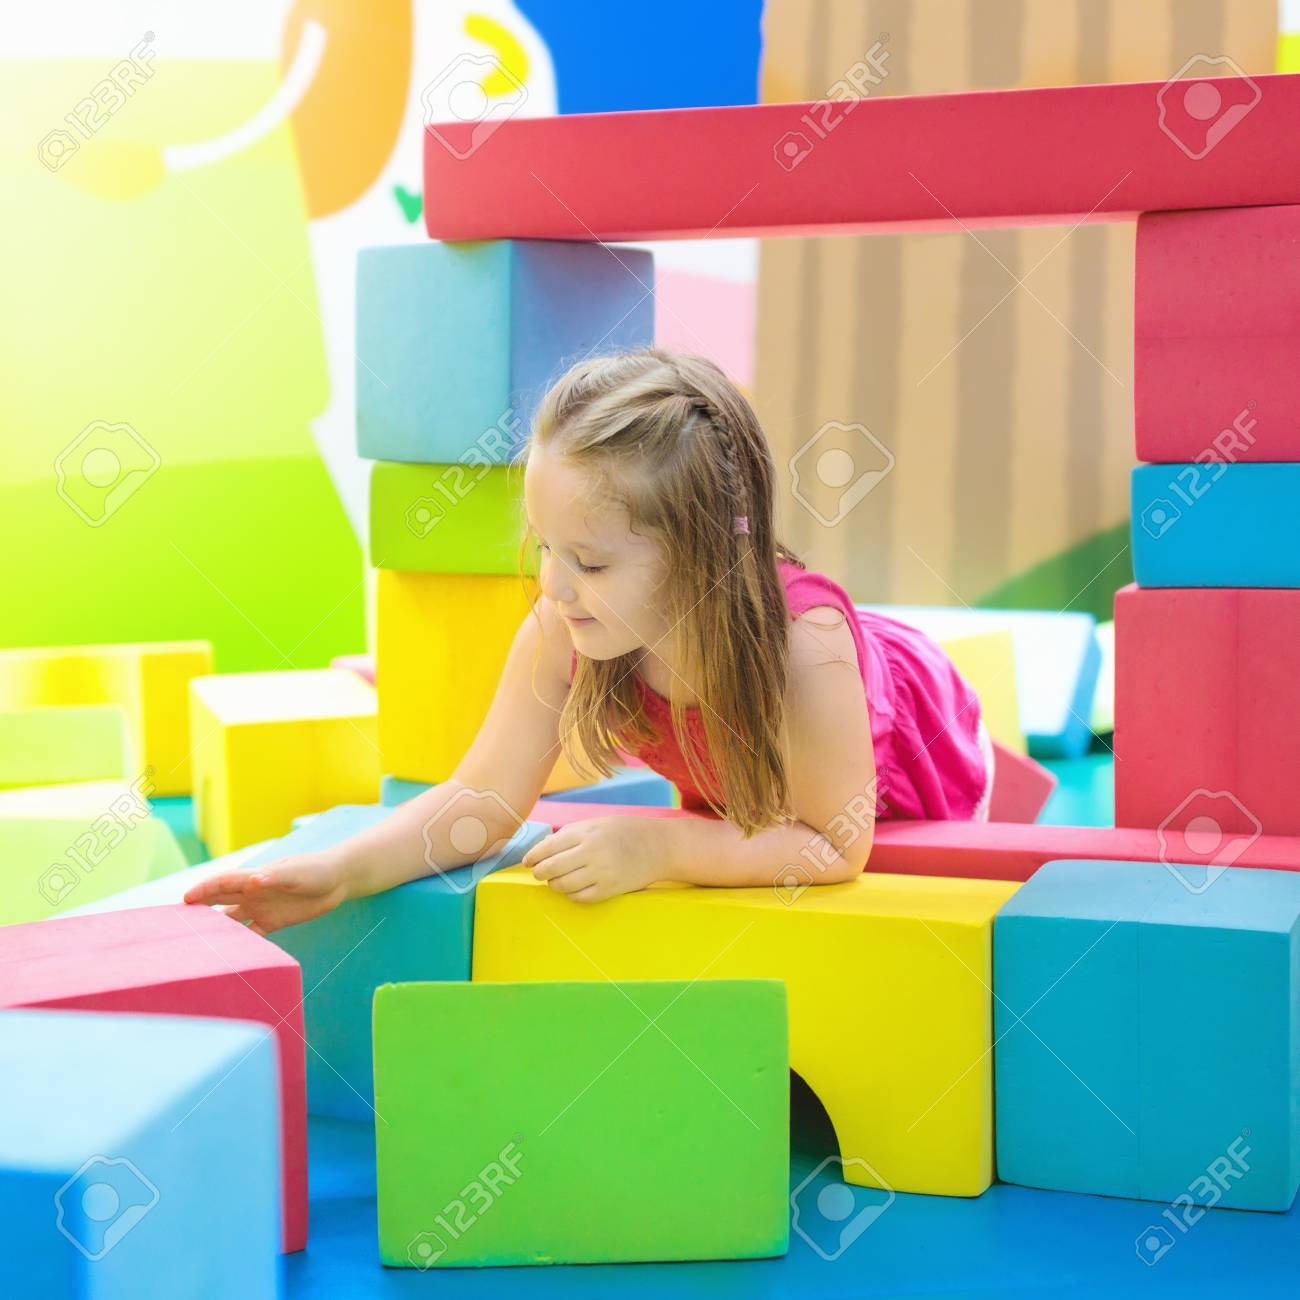 Child playing with colorful construction toy blocks. Educational..